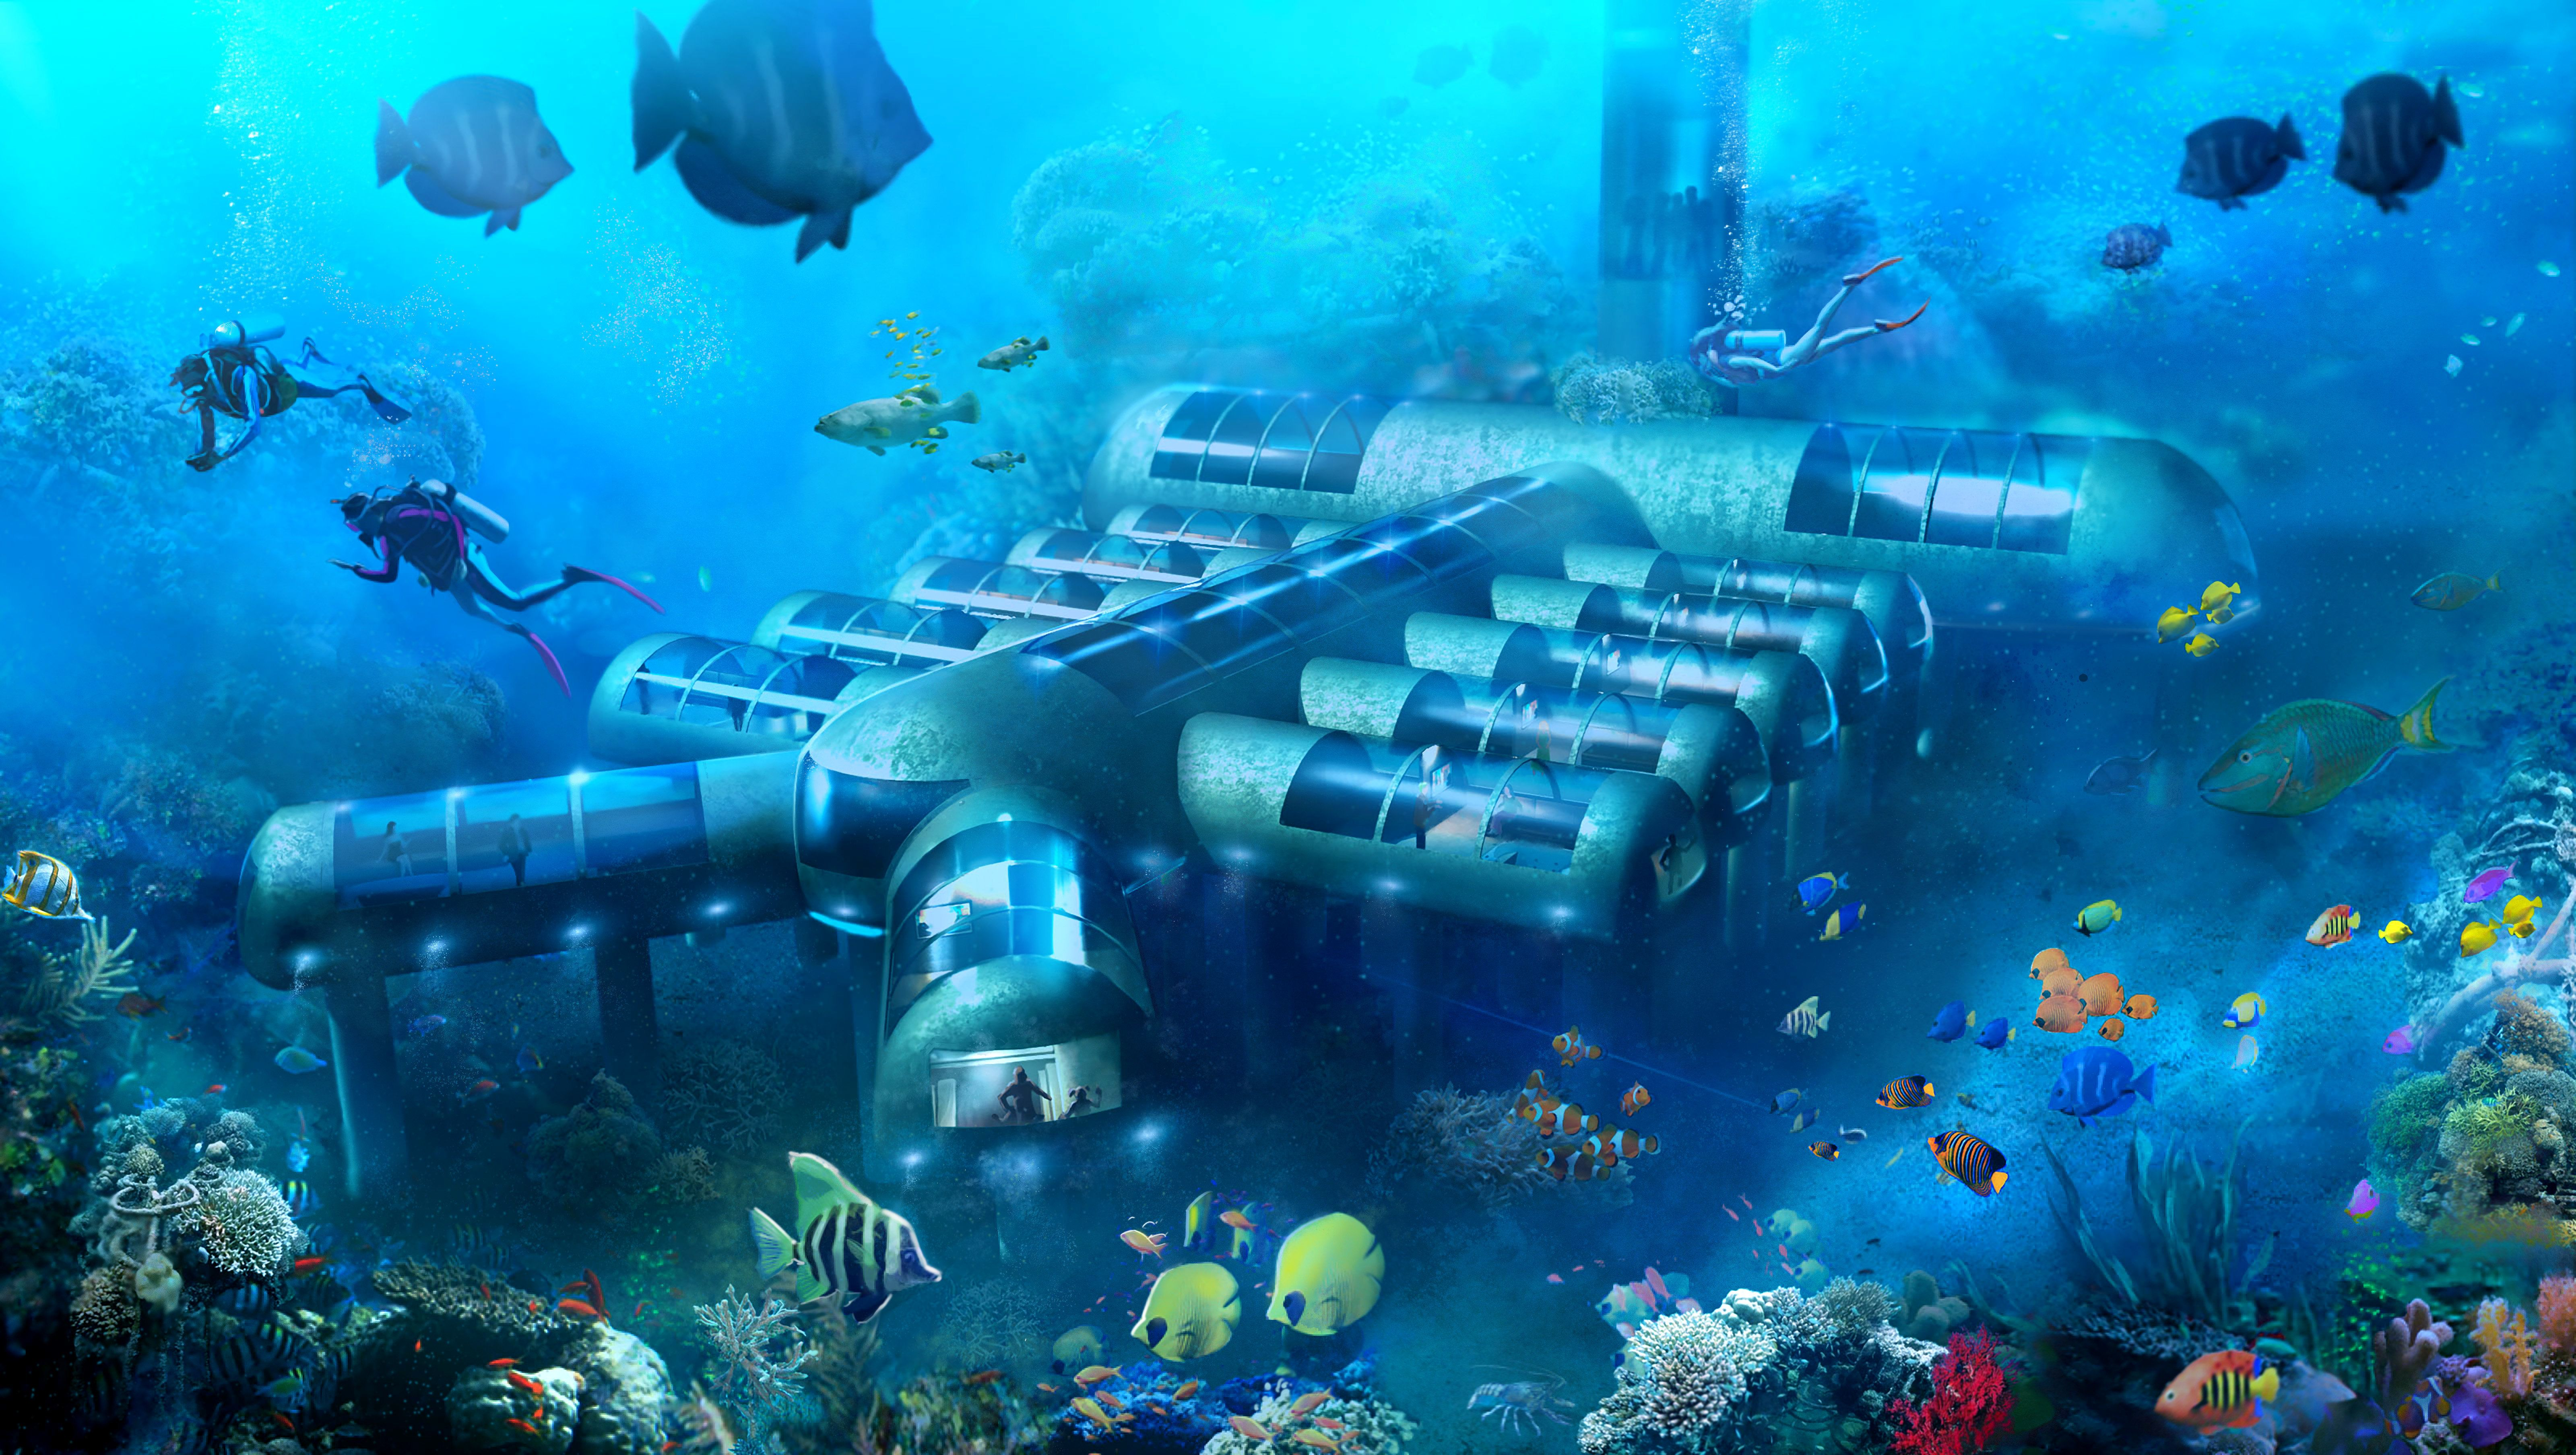 An illustration of what the Planet Ocean Underwater Hotel may look like.